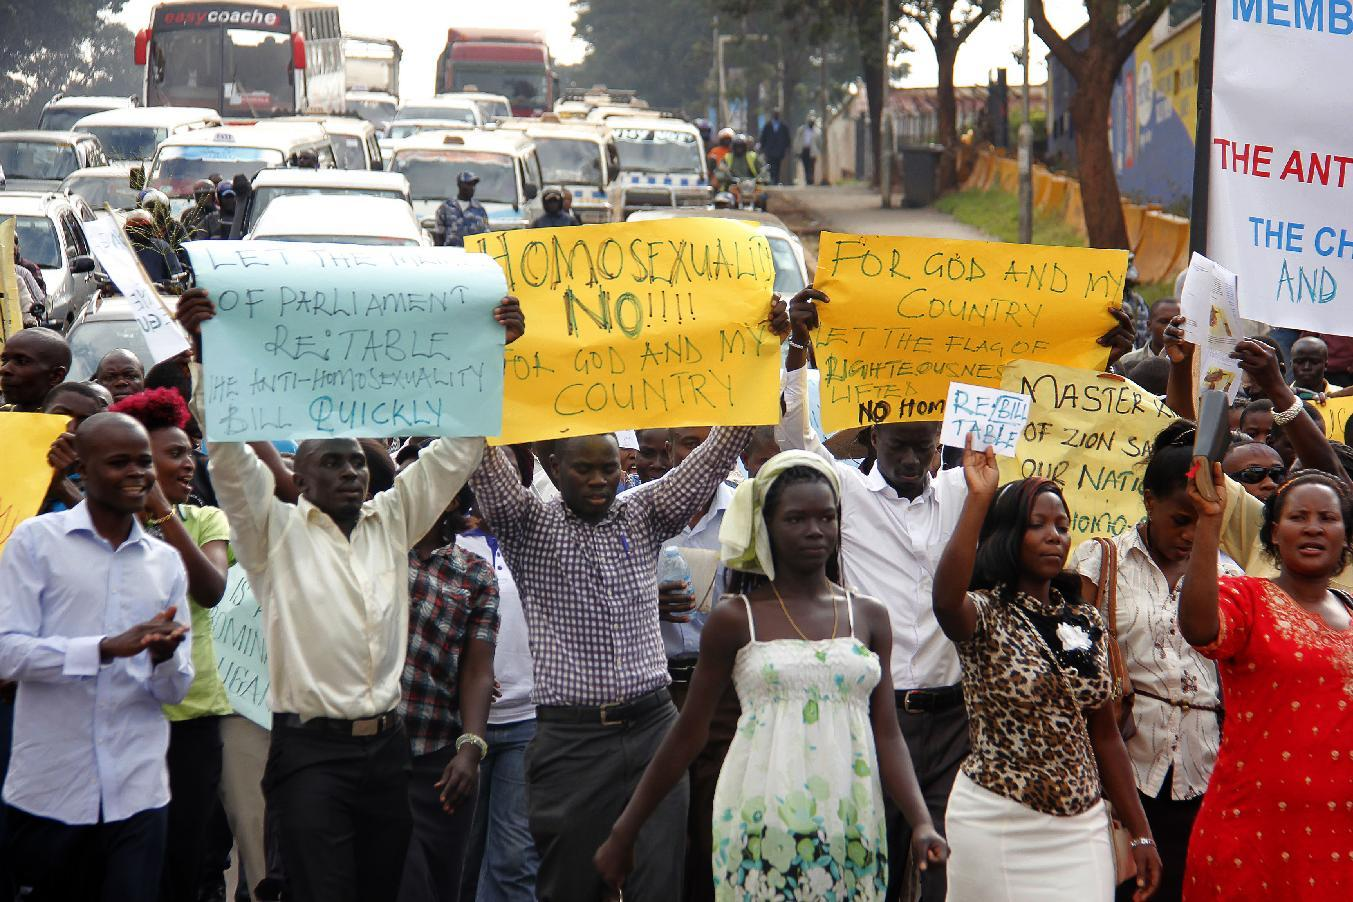 Anti-gay activists march on the streets of Kampala on August 11, 2014 after the new laws were annulled (AFP Photo/Isaac Kasamani)